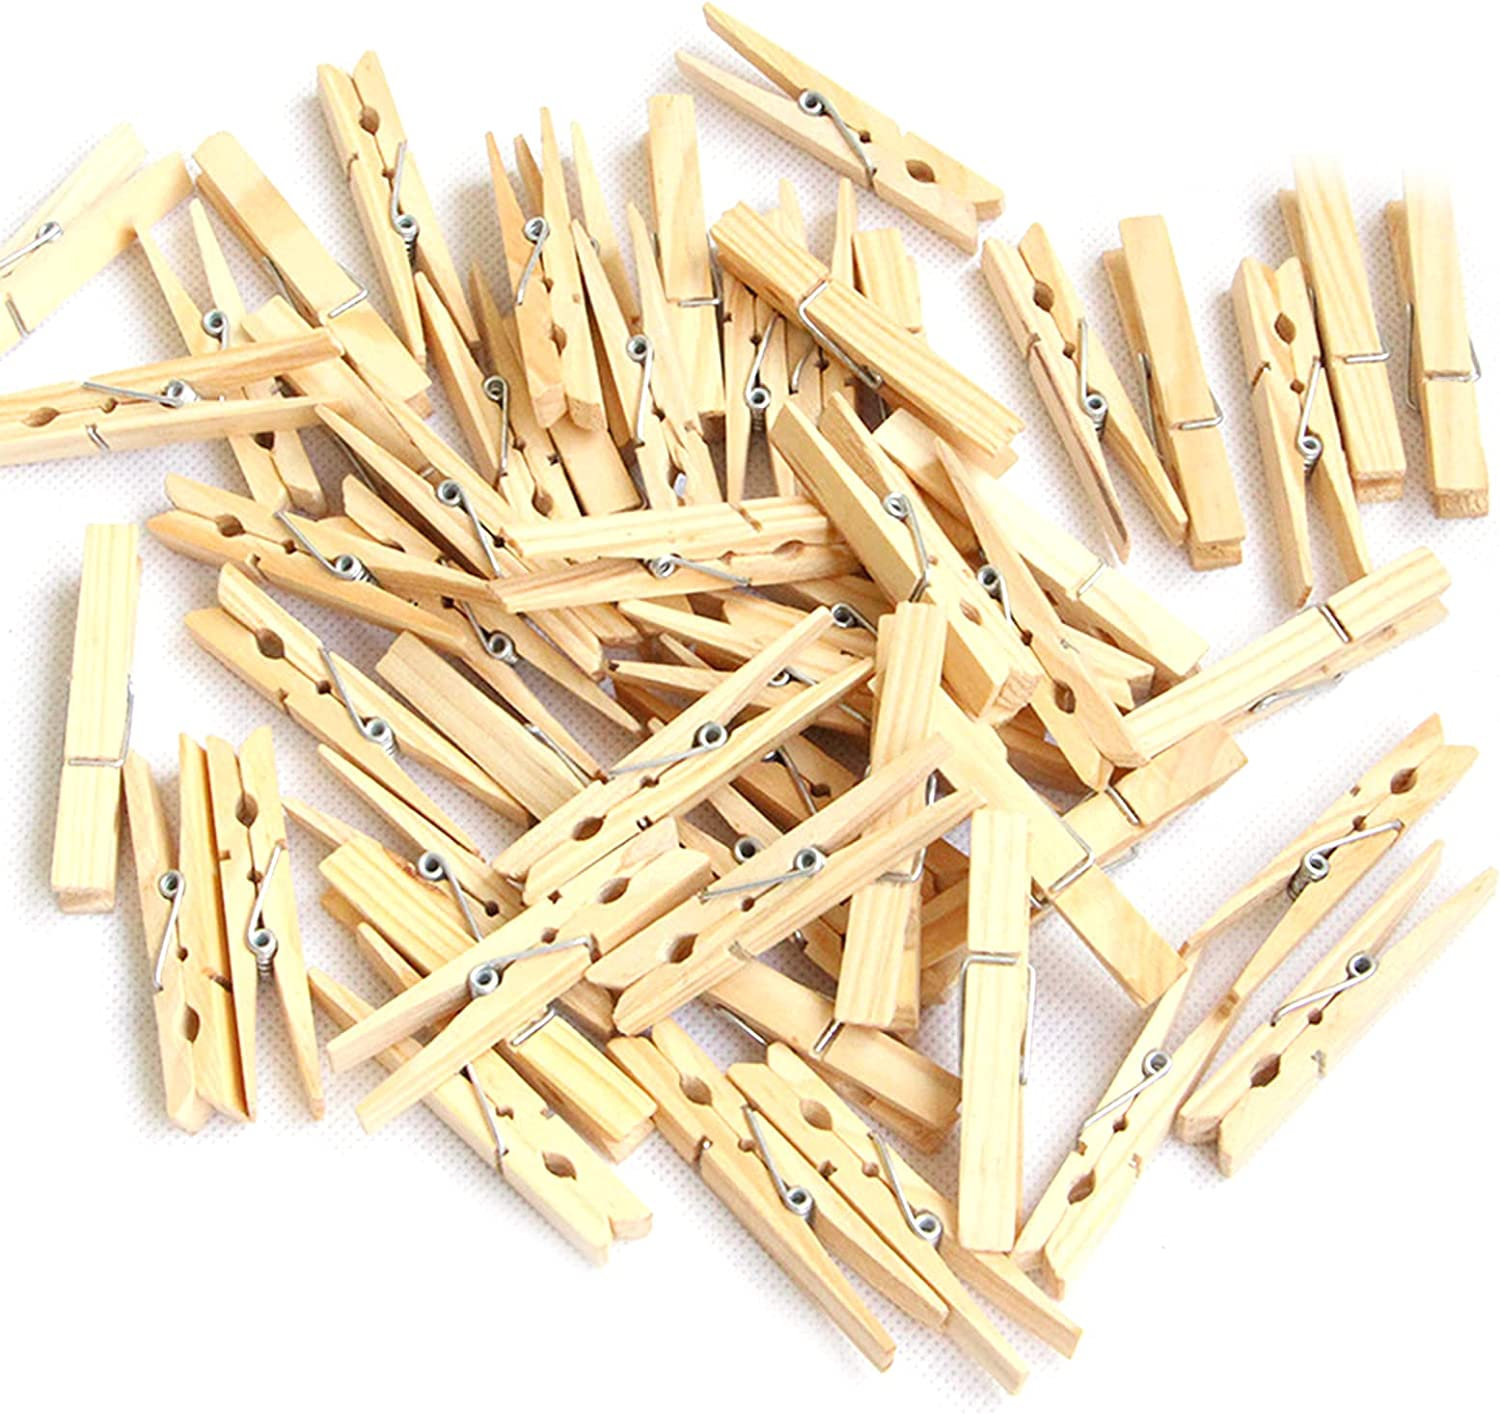 100pcs Wooden Clips Directly managed store Clothespins Paper for Han OFFicial shop Photo